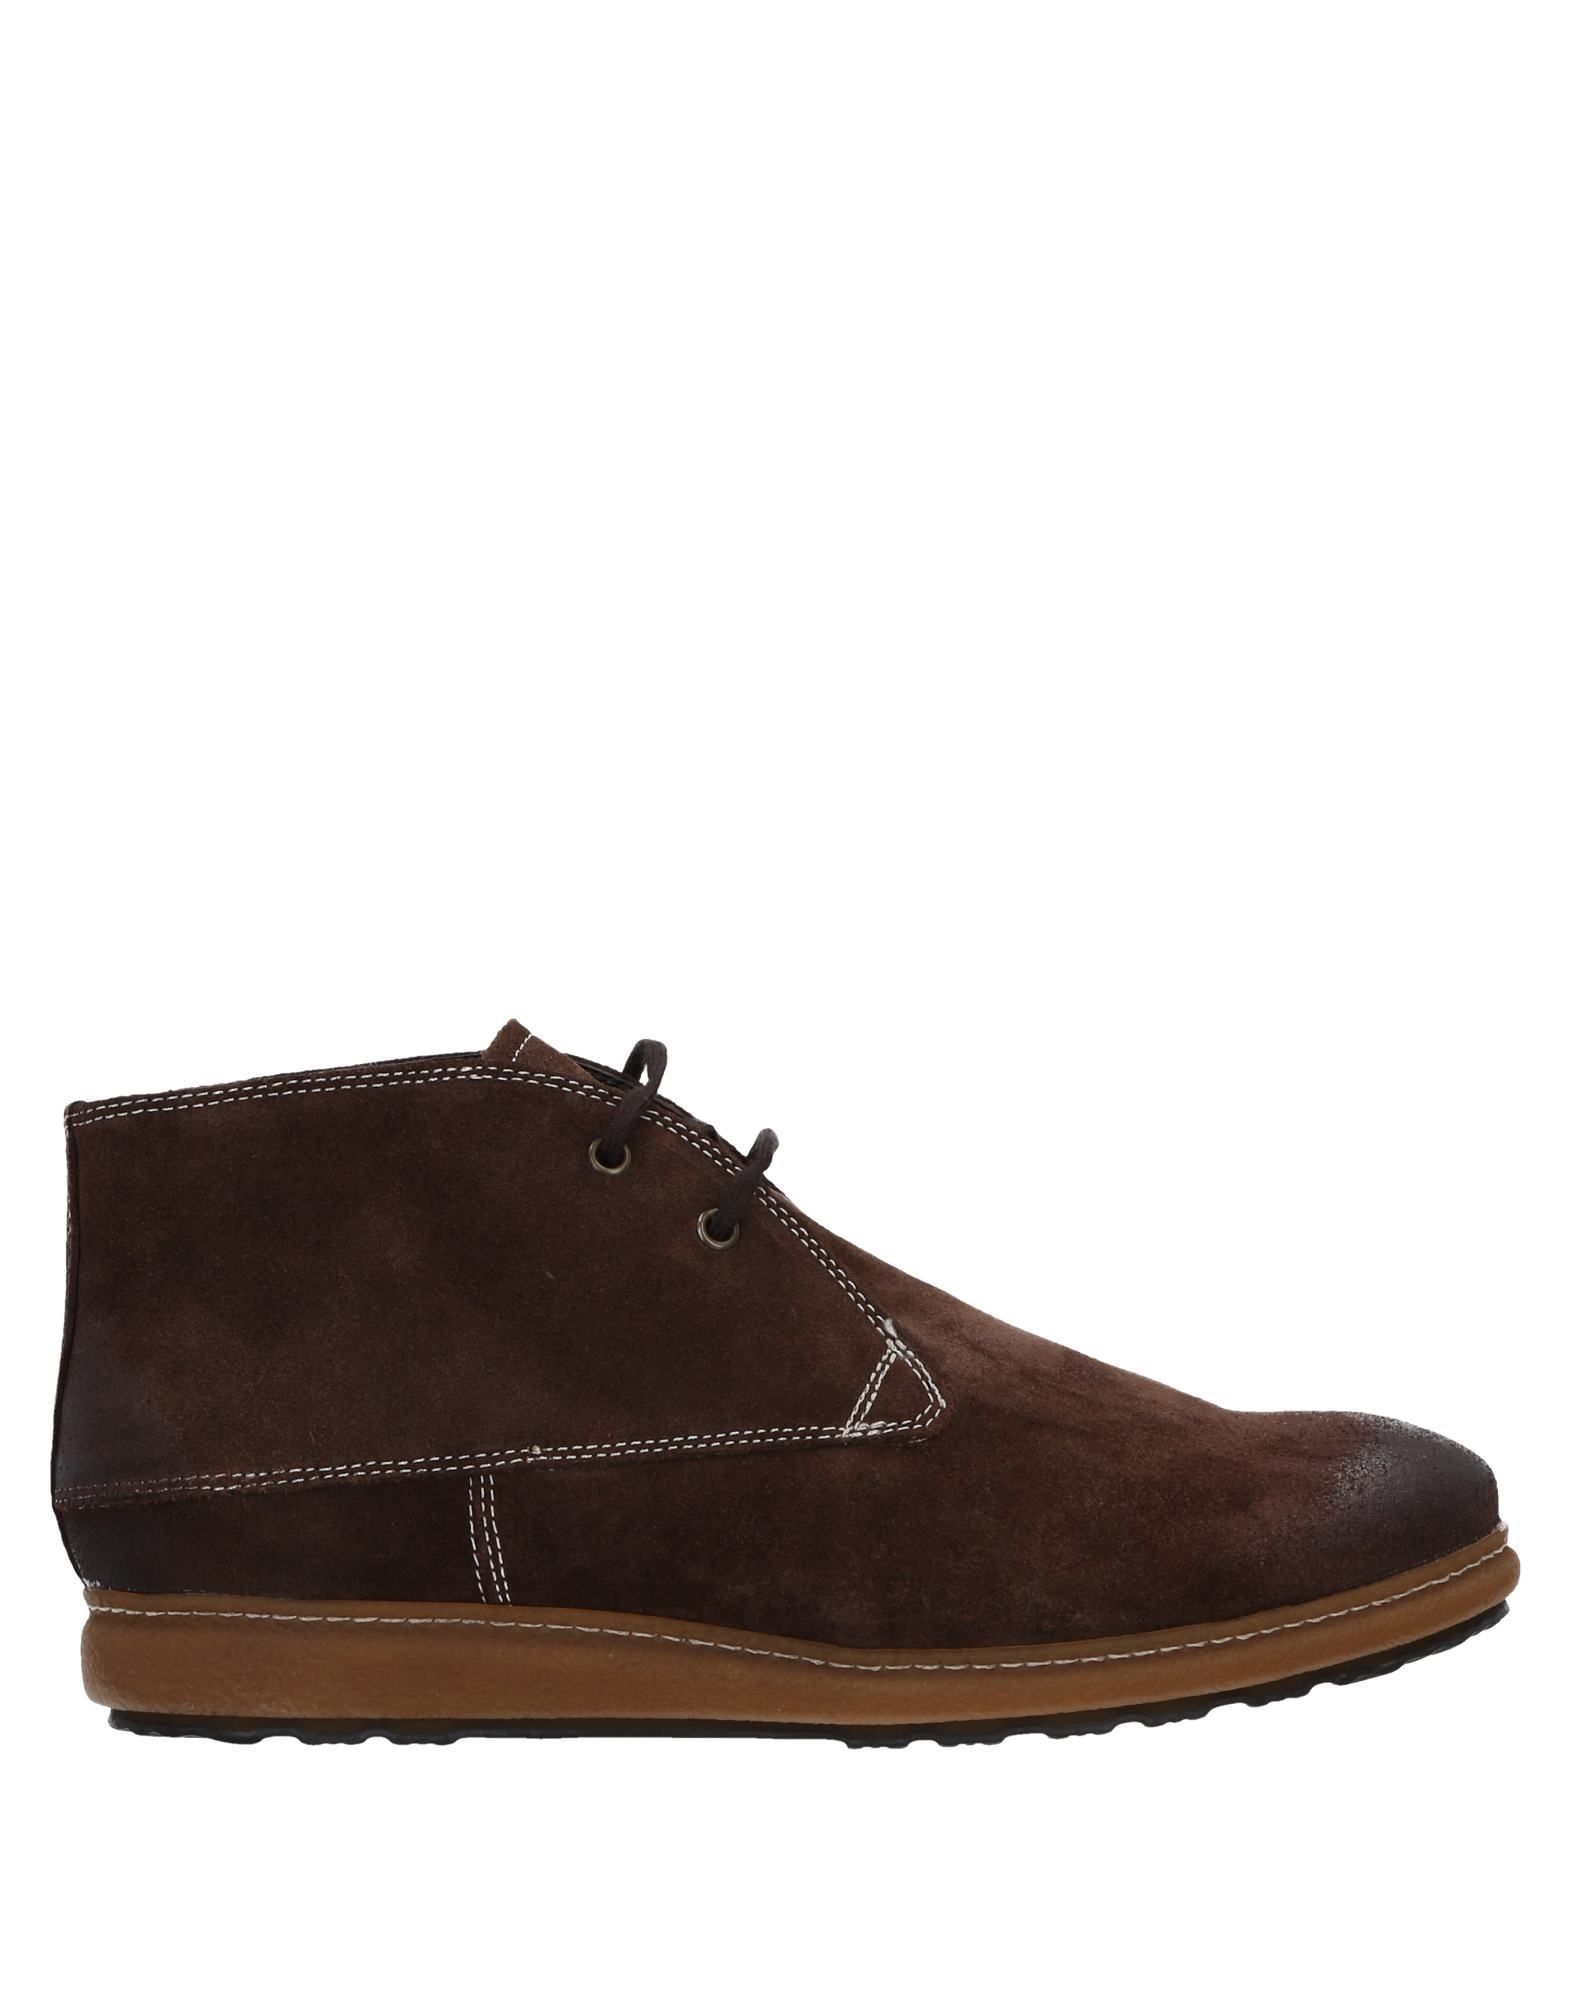 Anderson Boots online - Men Anderson Boots online Boots on  Canada - 11520655KF 6020bd